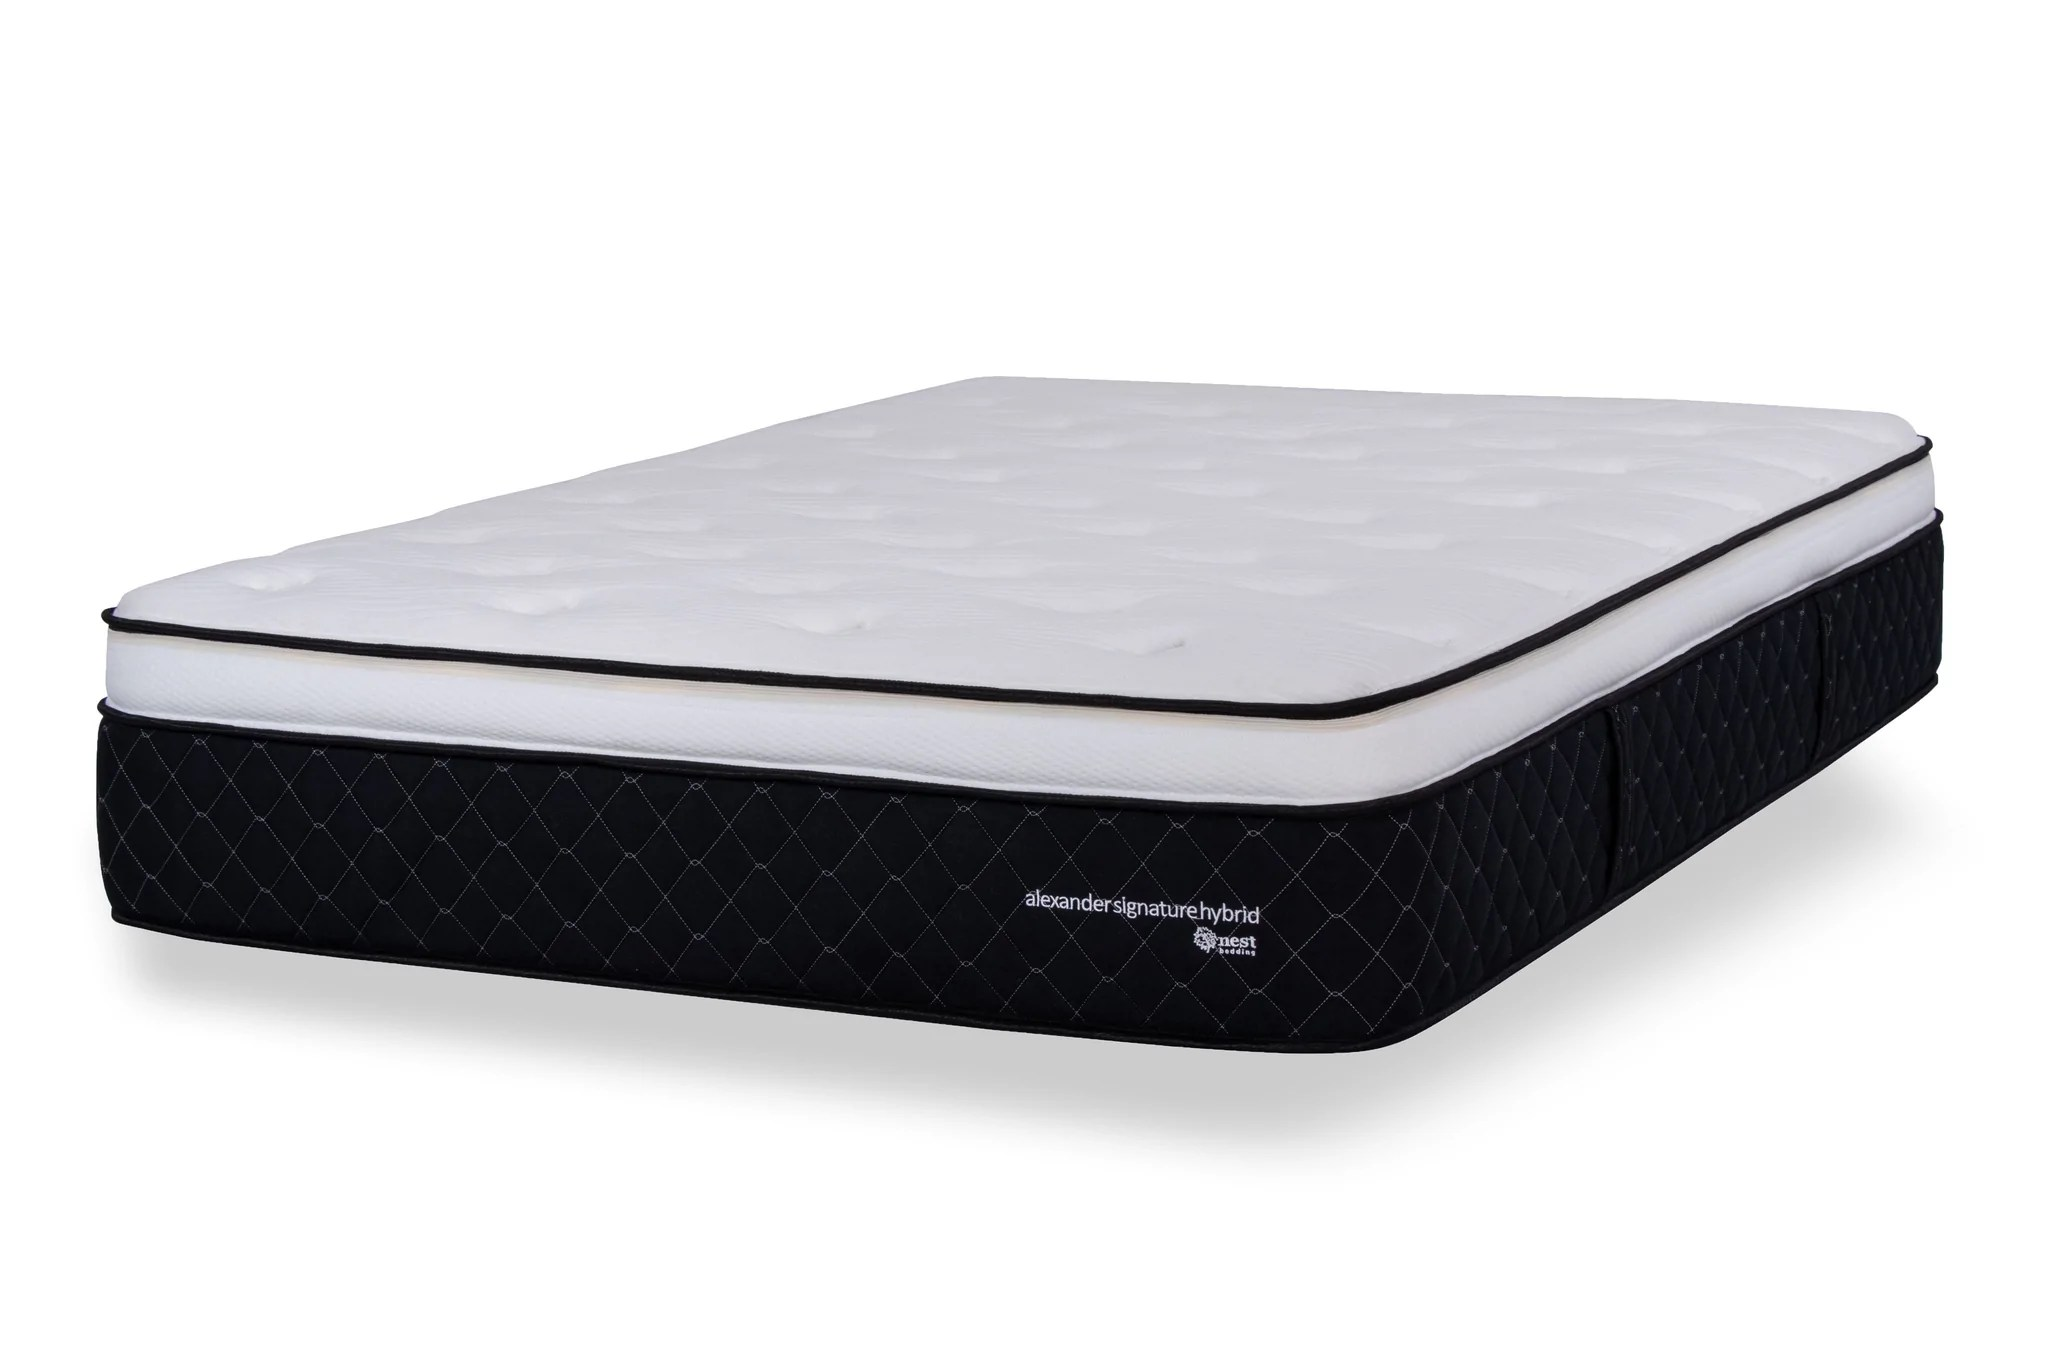 Best Mattress Amazon The Alexander Signature Hybrid